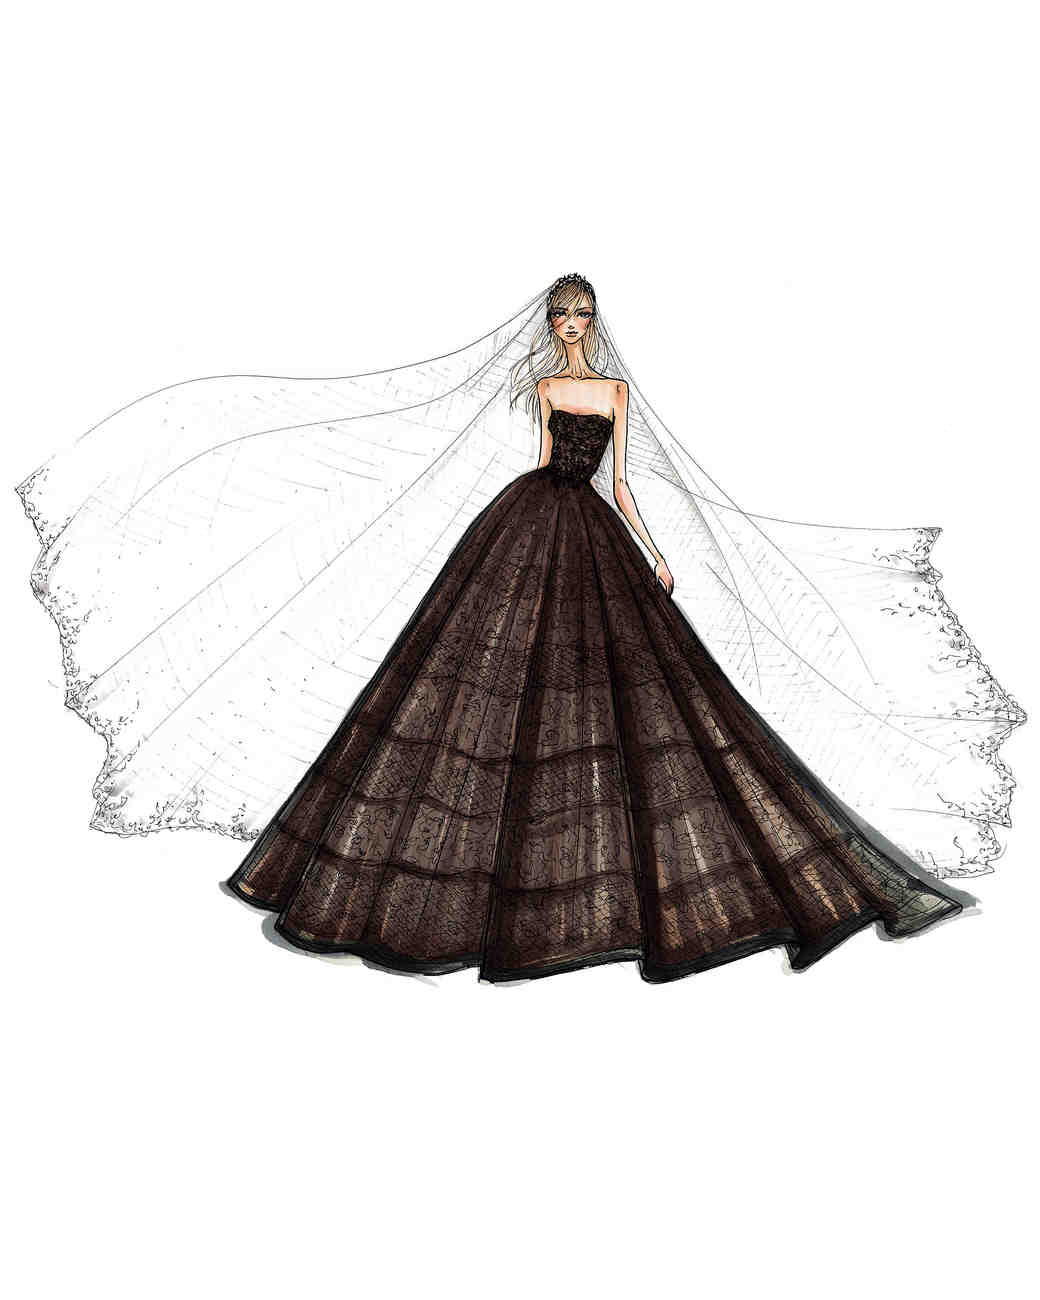 white by vera wang at davids bridal wedding dress sketch